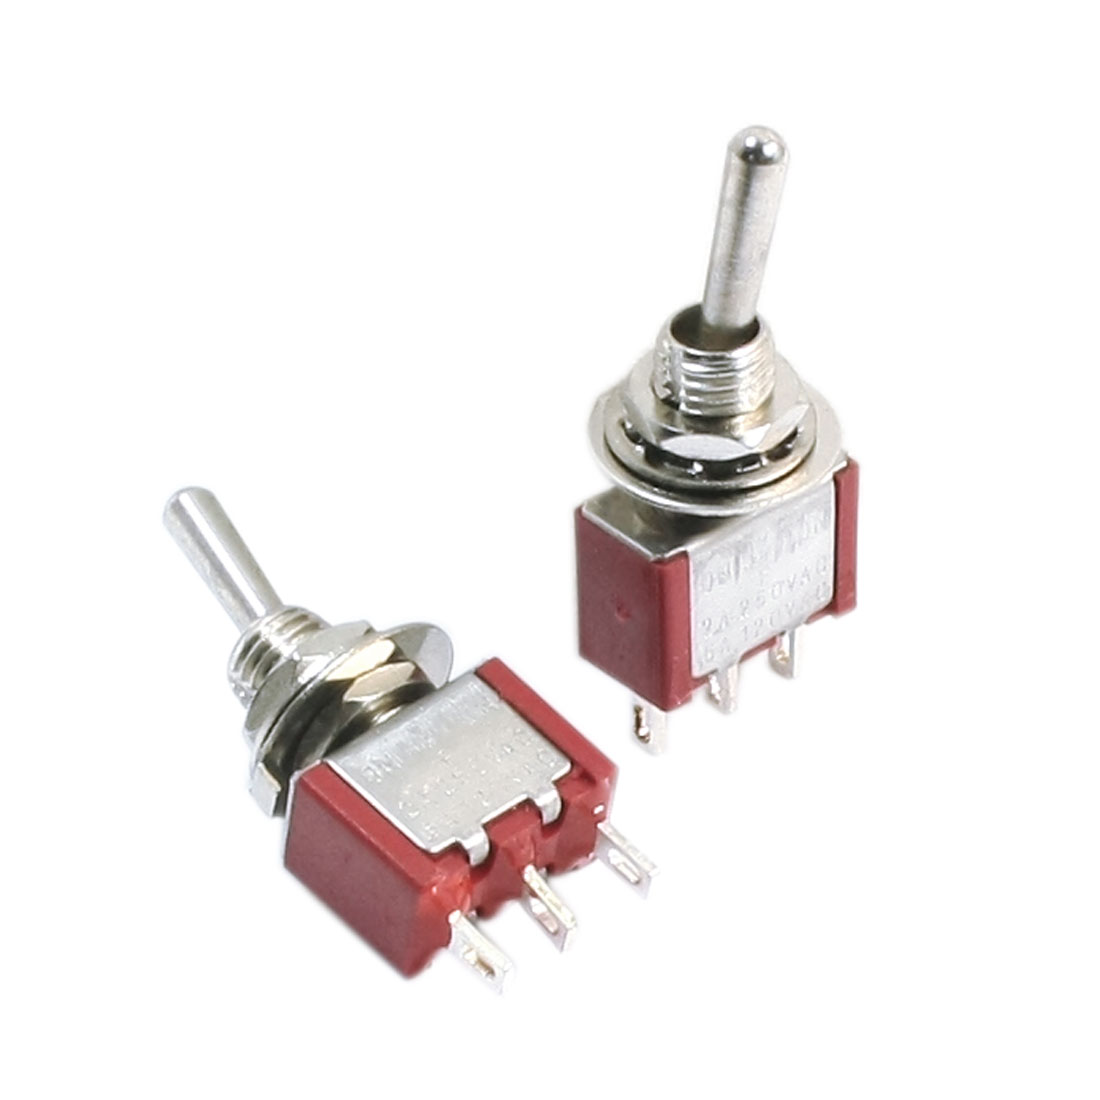 AC 120V 5A ON-OFF-ON 3 Positions 3 Pole Latching Toggle Switch SPDT Red 2pcs